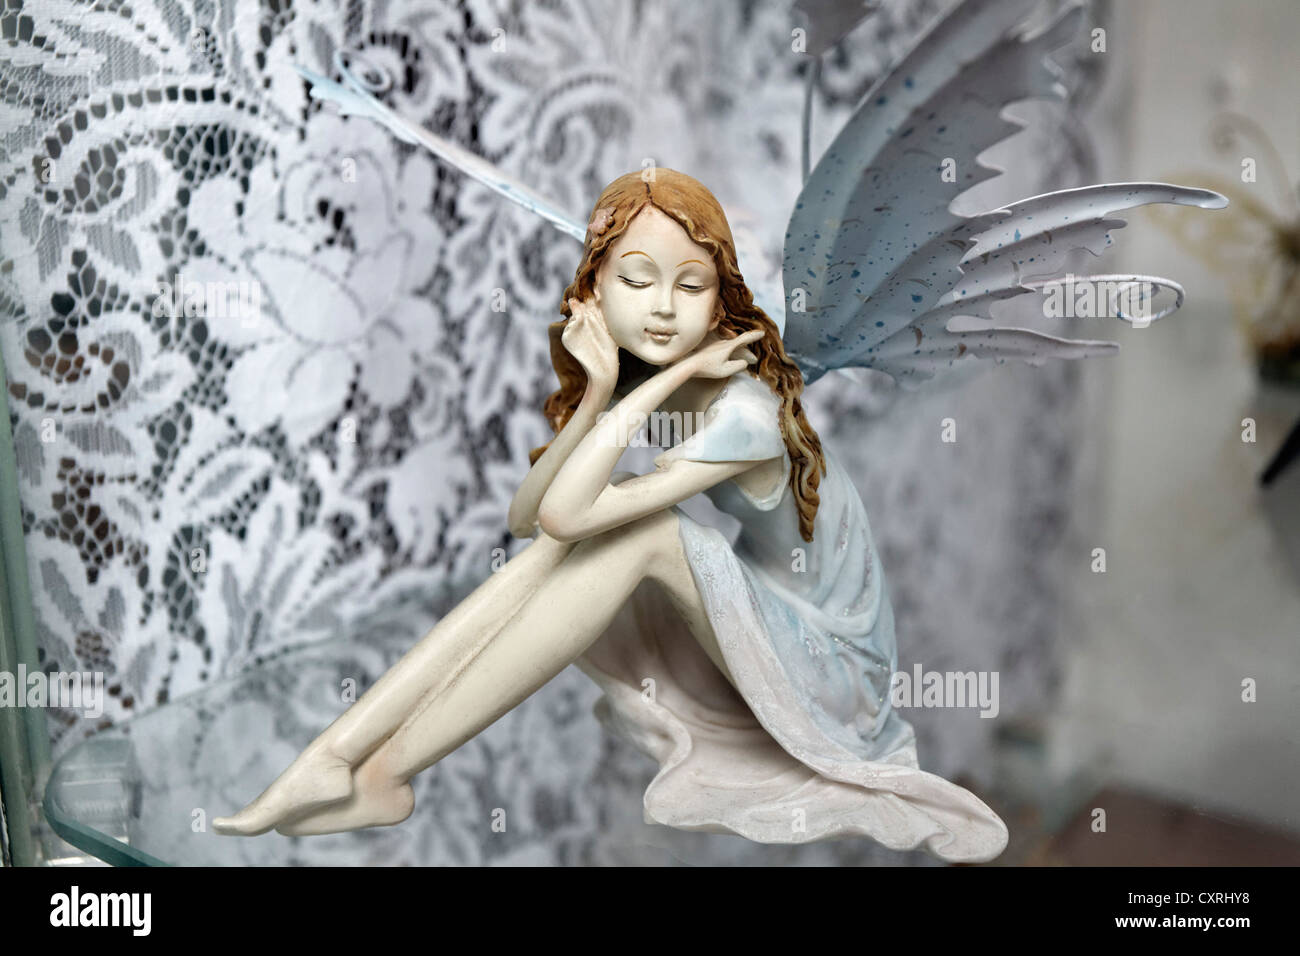 Figure of a small elf with wings in a shop window, kitsch, Casamicciola Terme, Ischia Island, Gulf of Naples, Campania - Stock Image